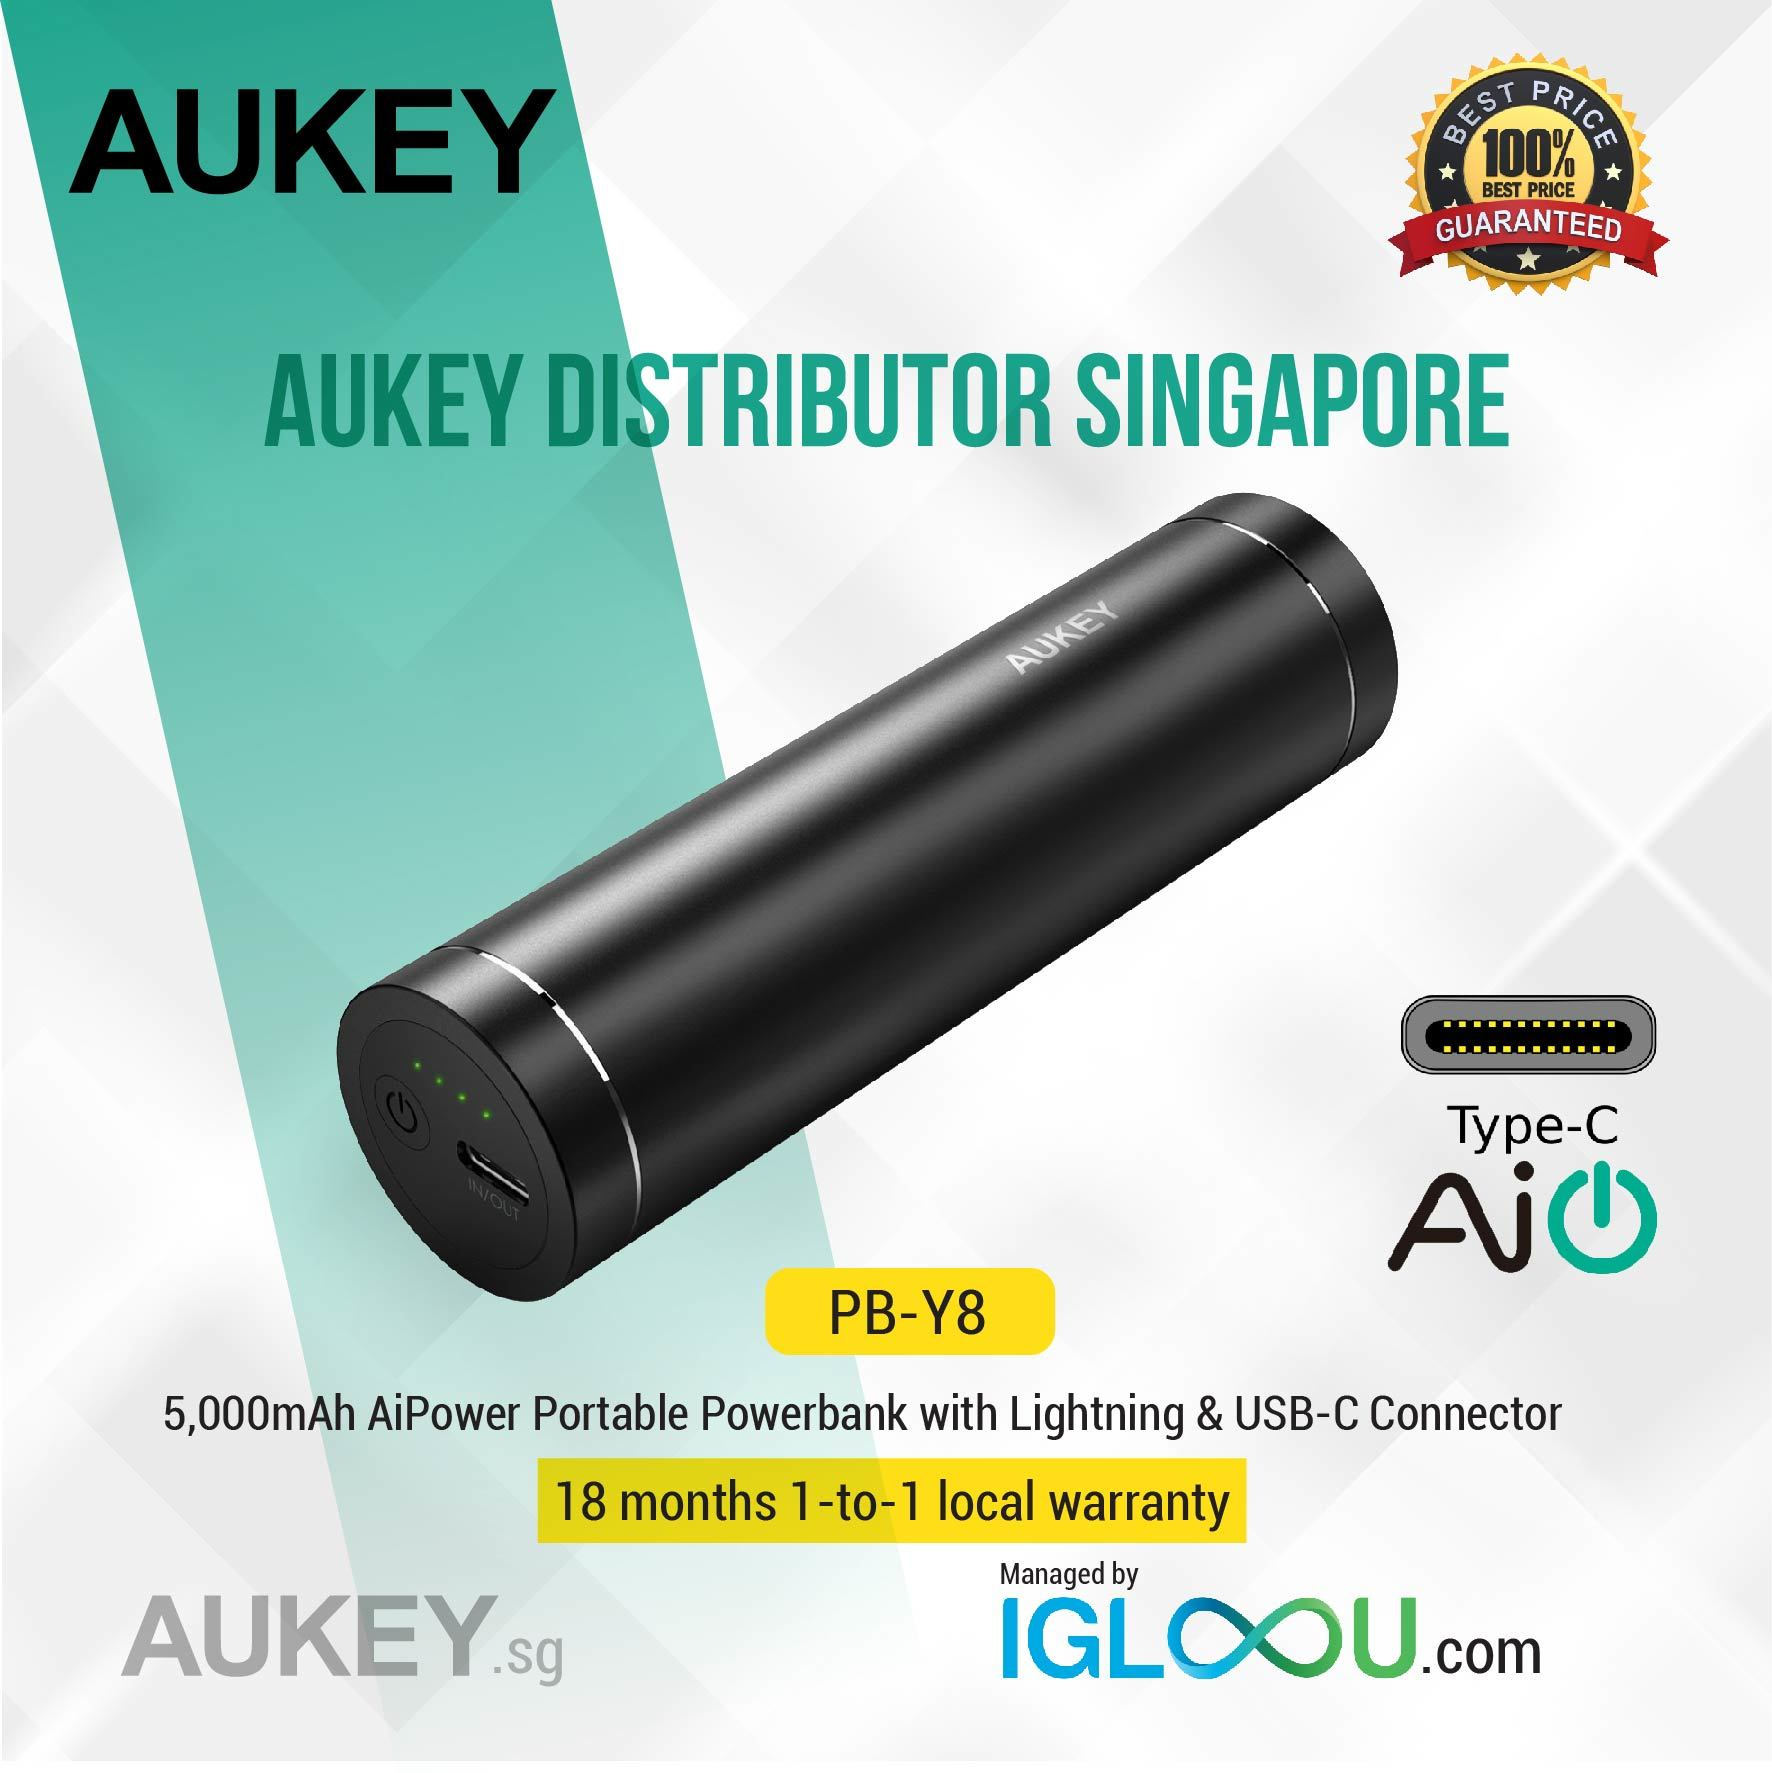 Qoo10 Pb Y8 Aukey Mobile Accessories Cb Cd5 Cable 1m Usb C To Quick Charge 30 Braided Nylon Show All Item Images Close Actual Size Prev Next 5000mah